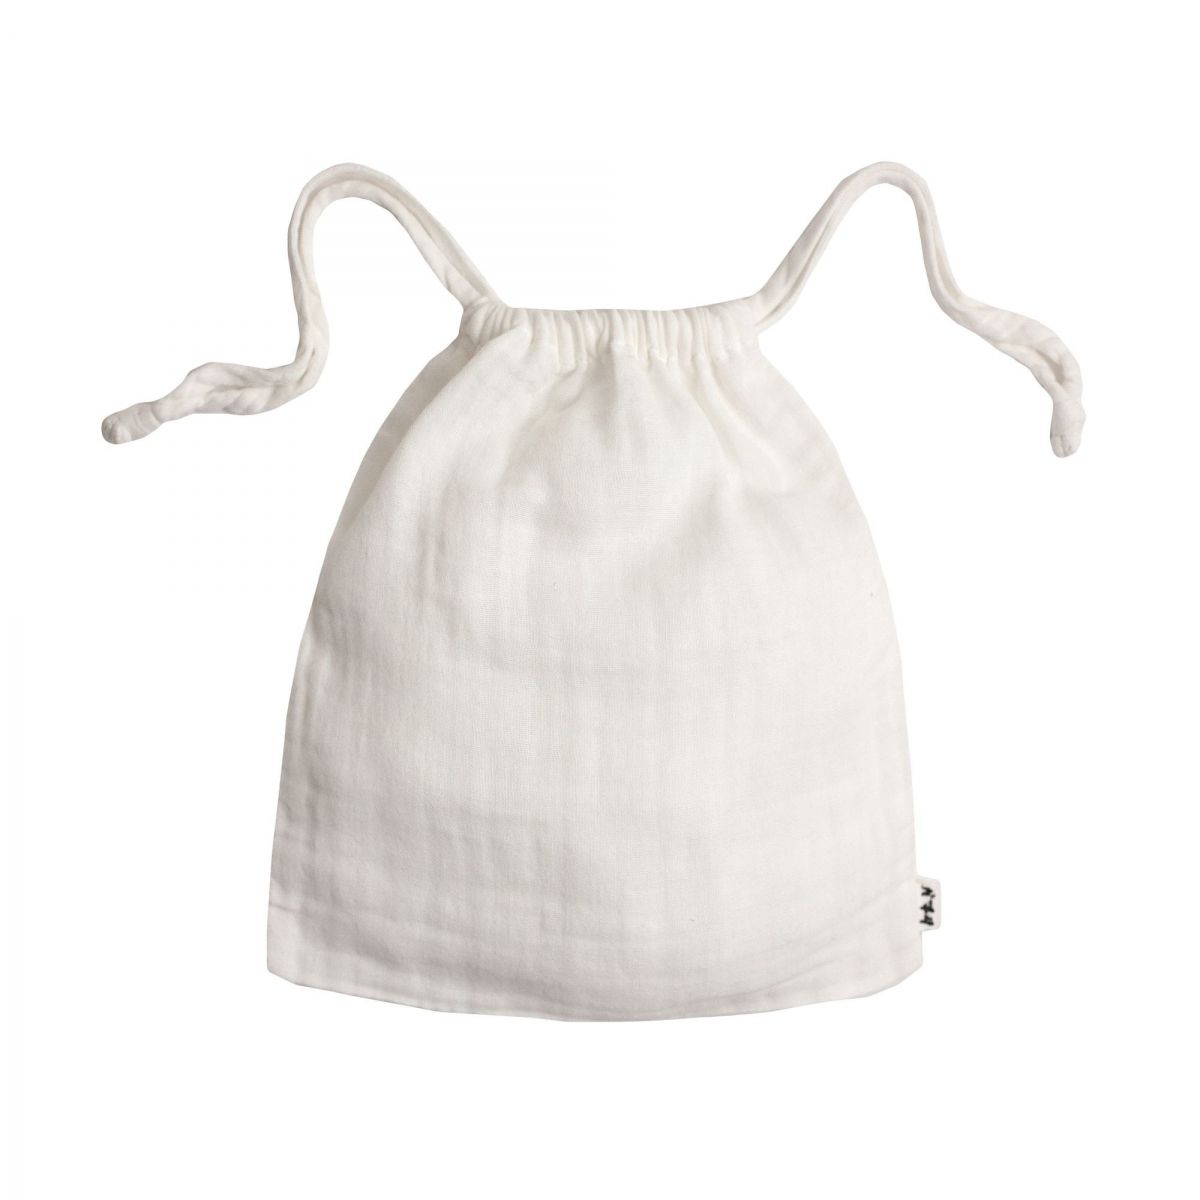 Numero 74 Bag Nana Swaddle natural